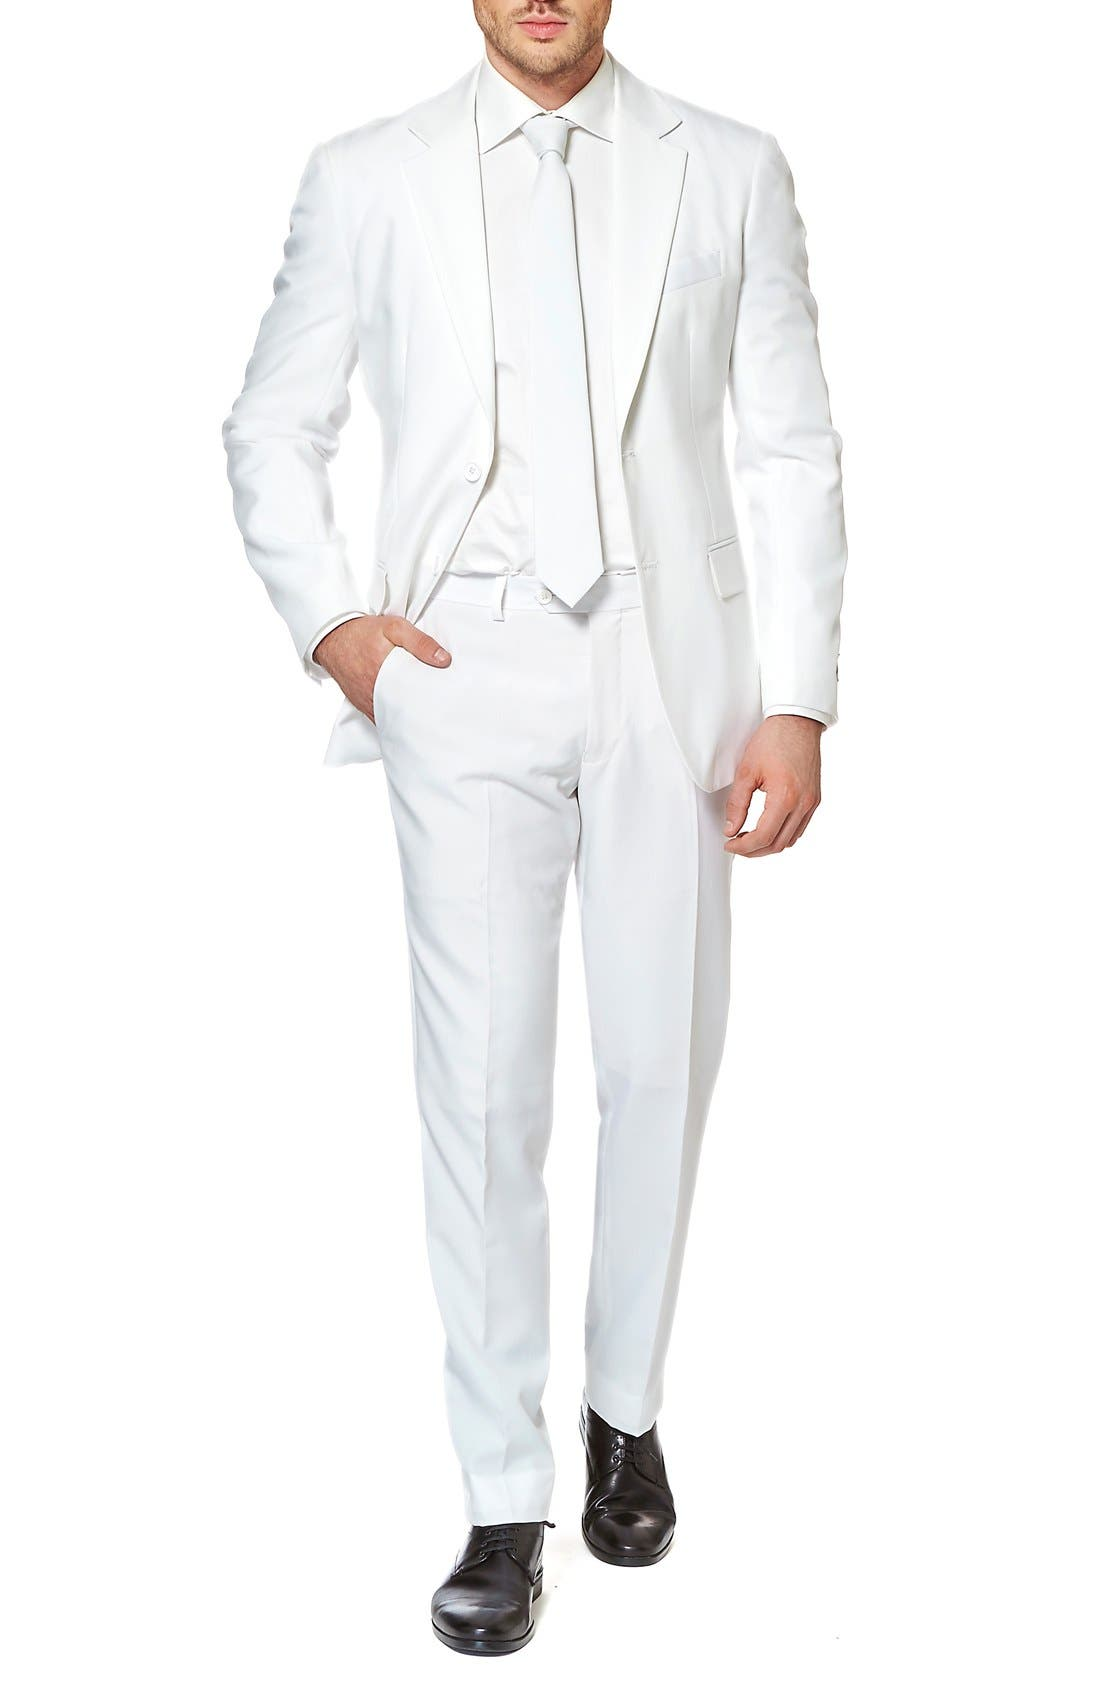 OppoSuits White Knight Trim Fit Two-Piece Suit with Tie